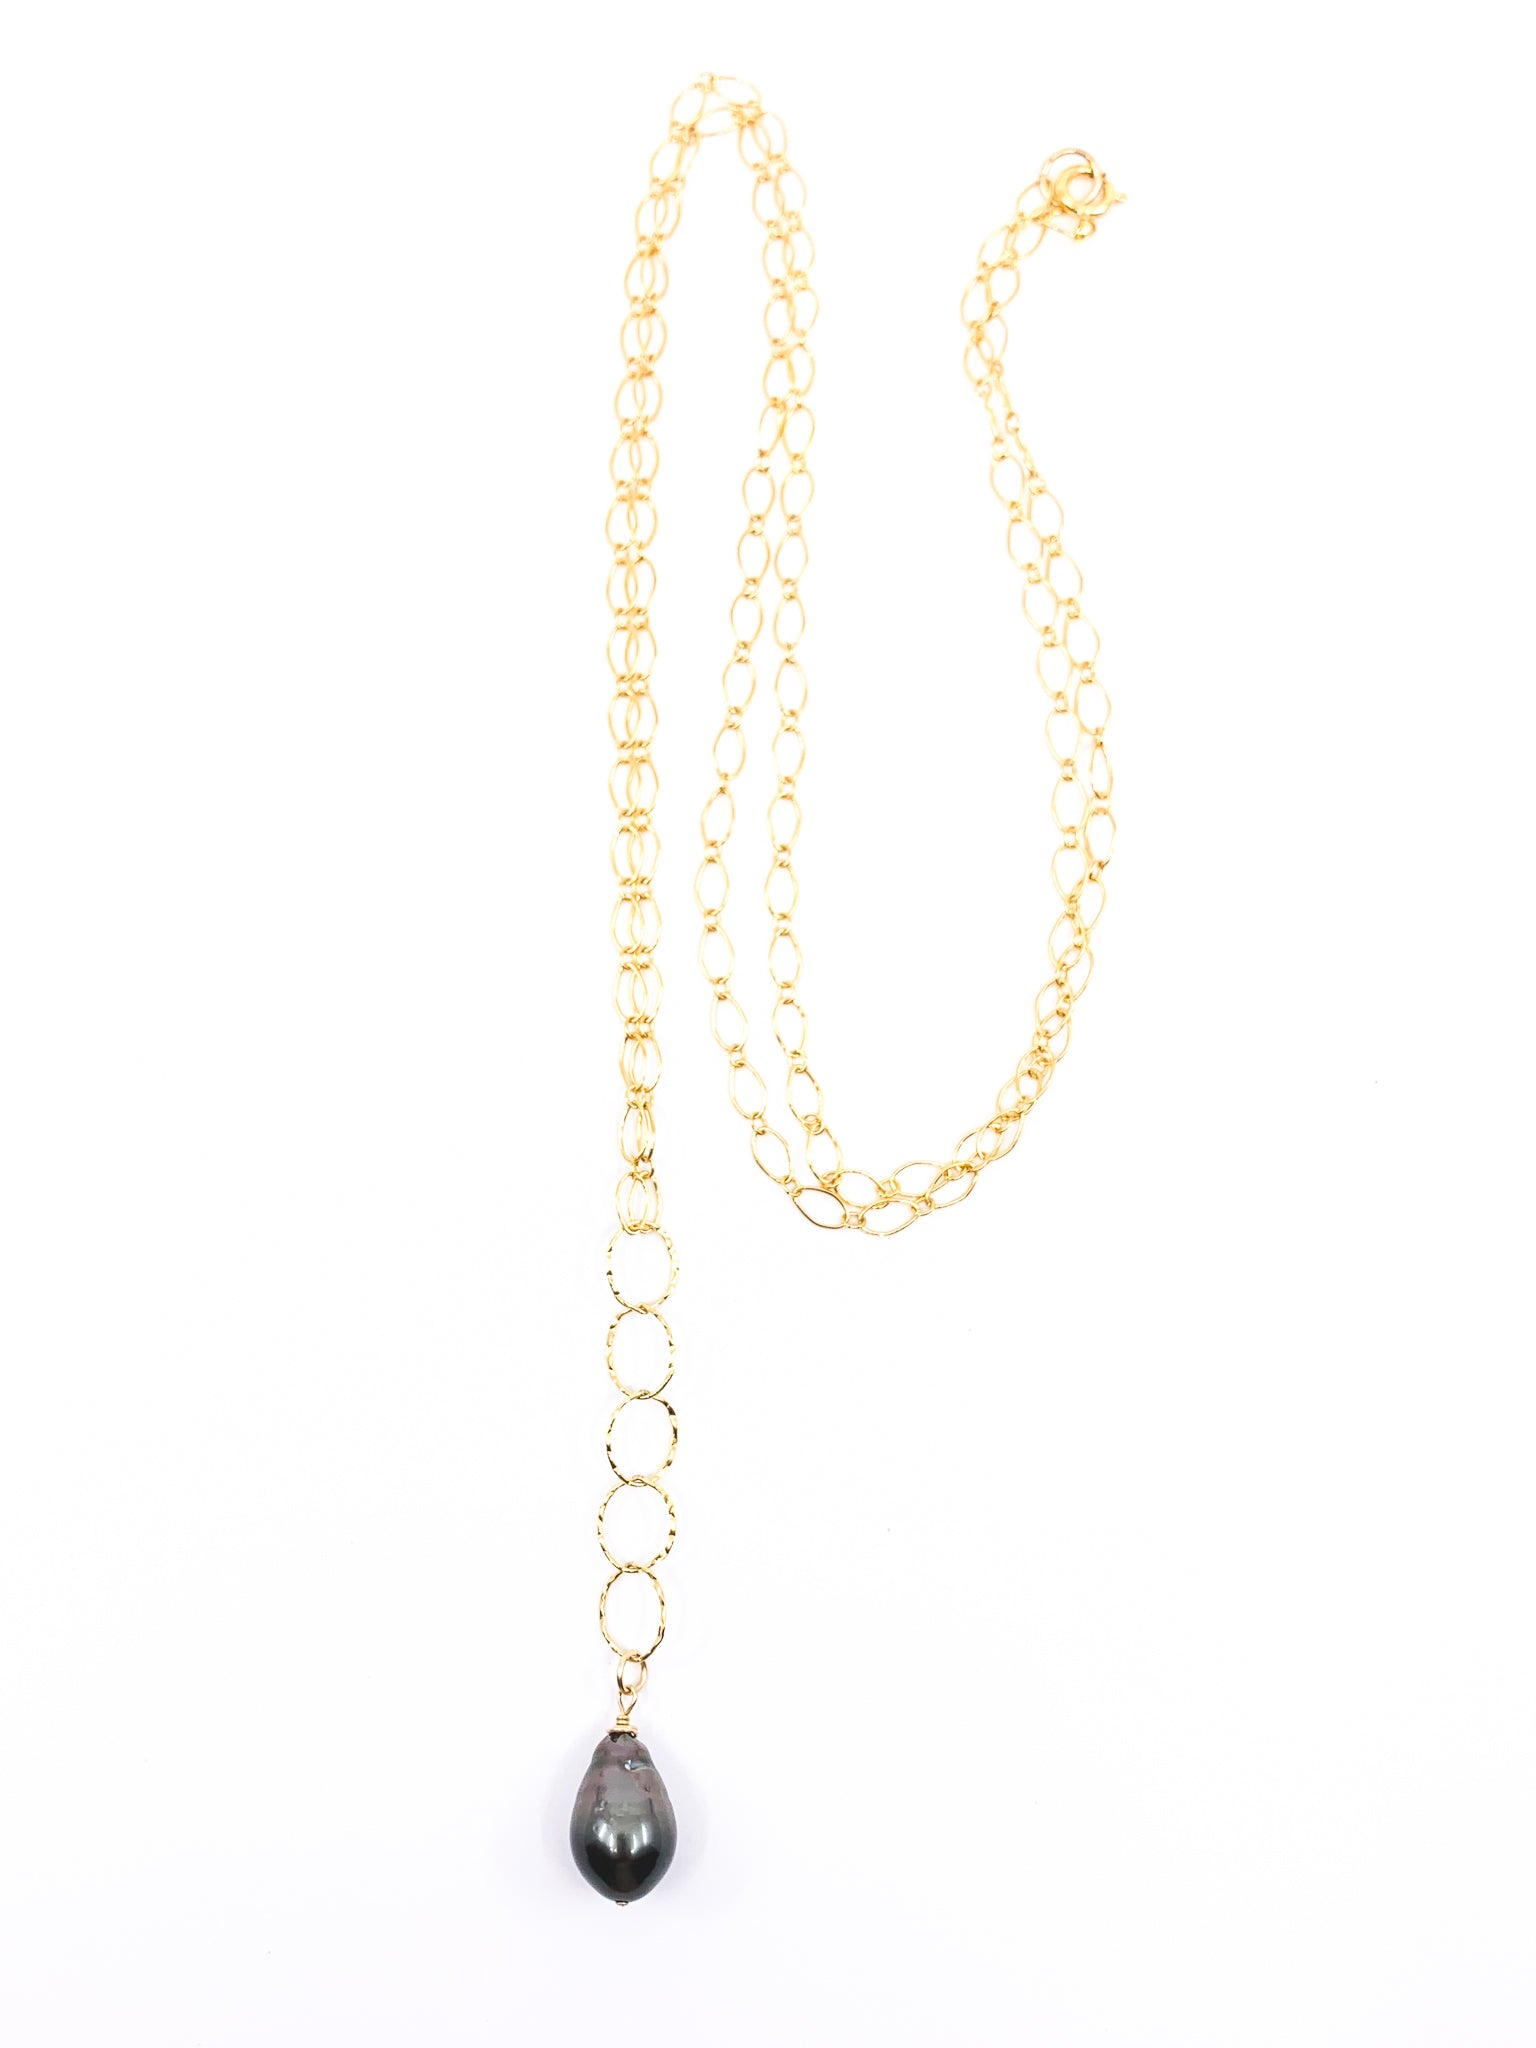 single tahitian pearl long necklace by eve black jewelry made in hawaii